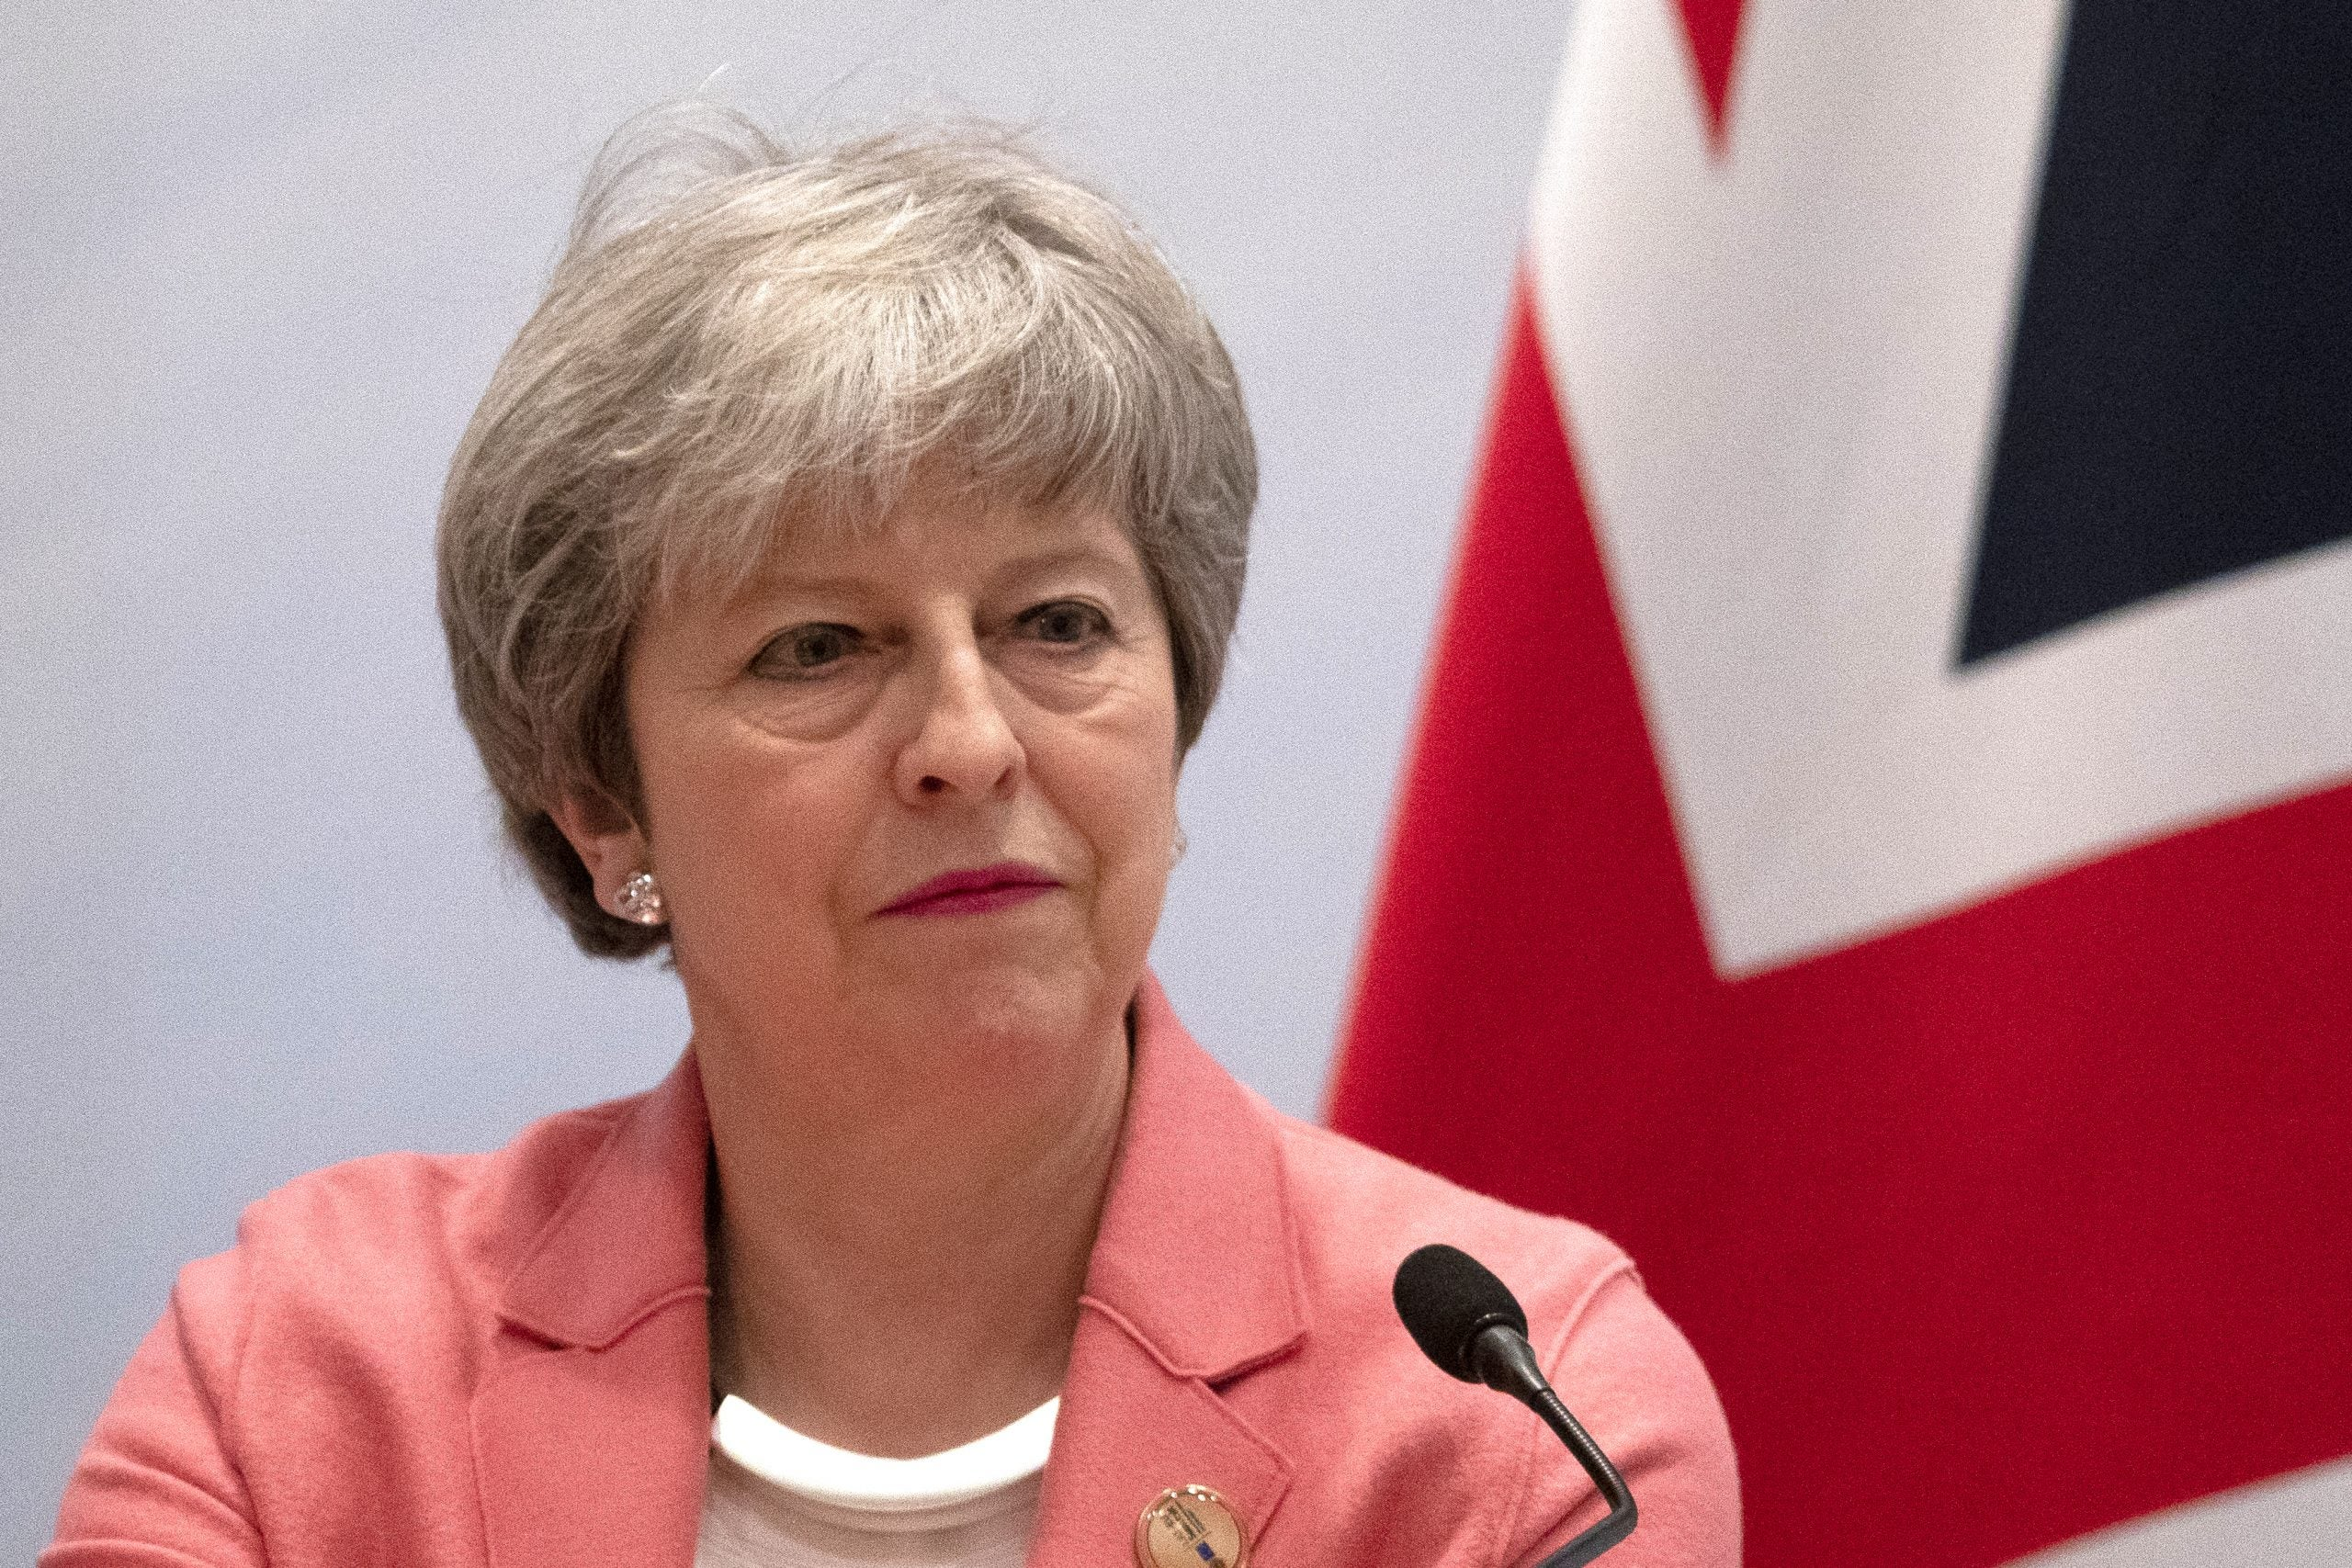 Will EU resistance to extending Article 50 push MPs into voting for May's deal?